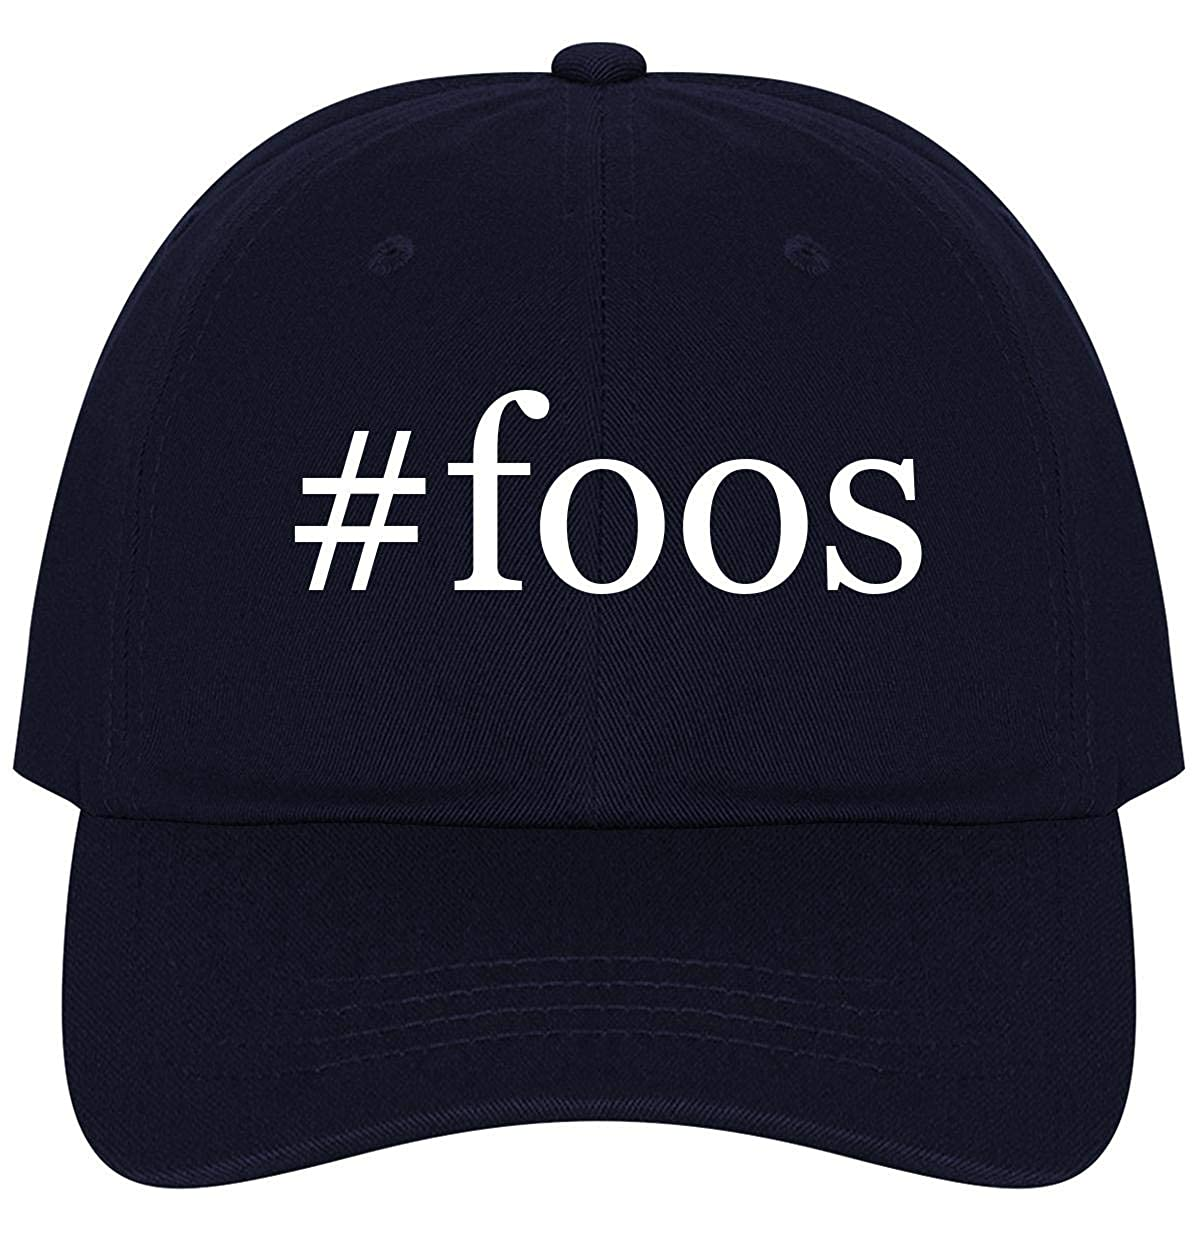 A Nice Comfortable Adjustable Hashtag Dad Hat Cap The Town Butler #foos